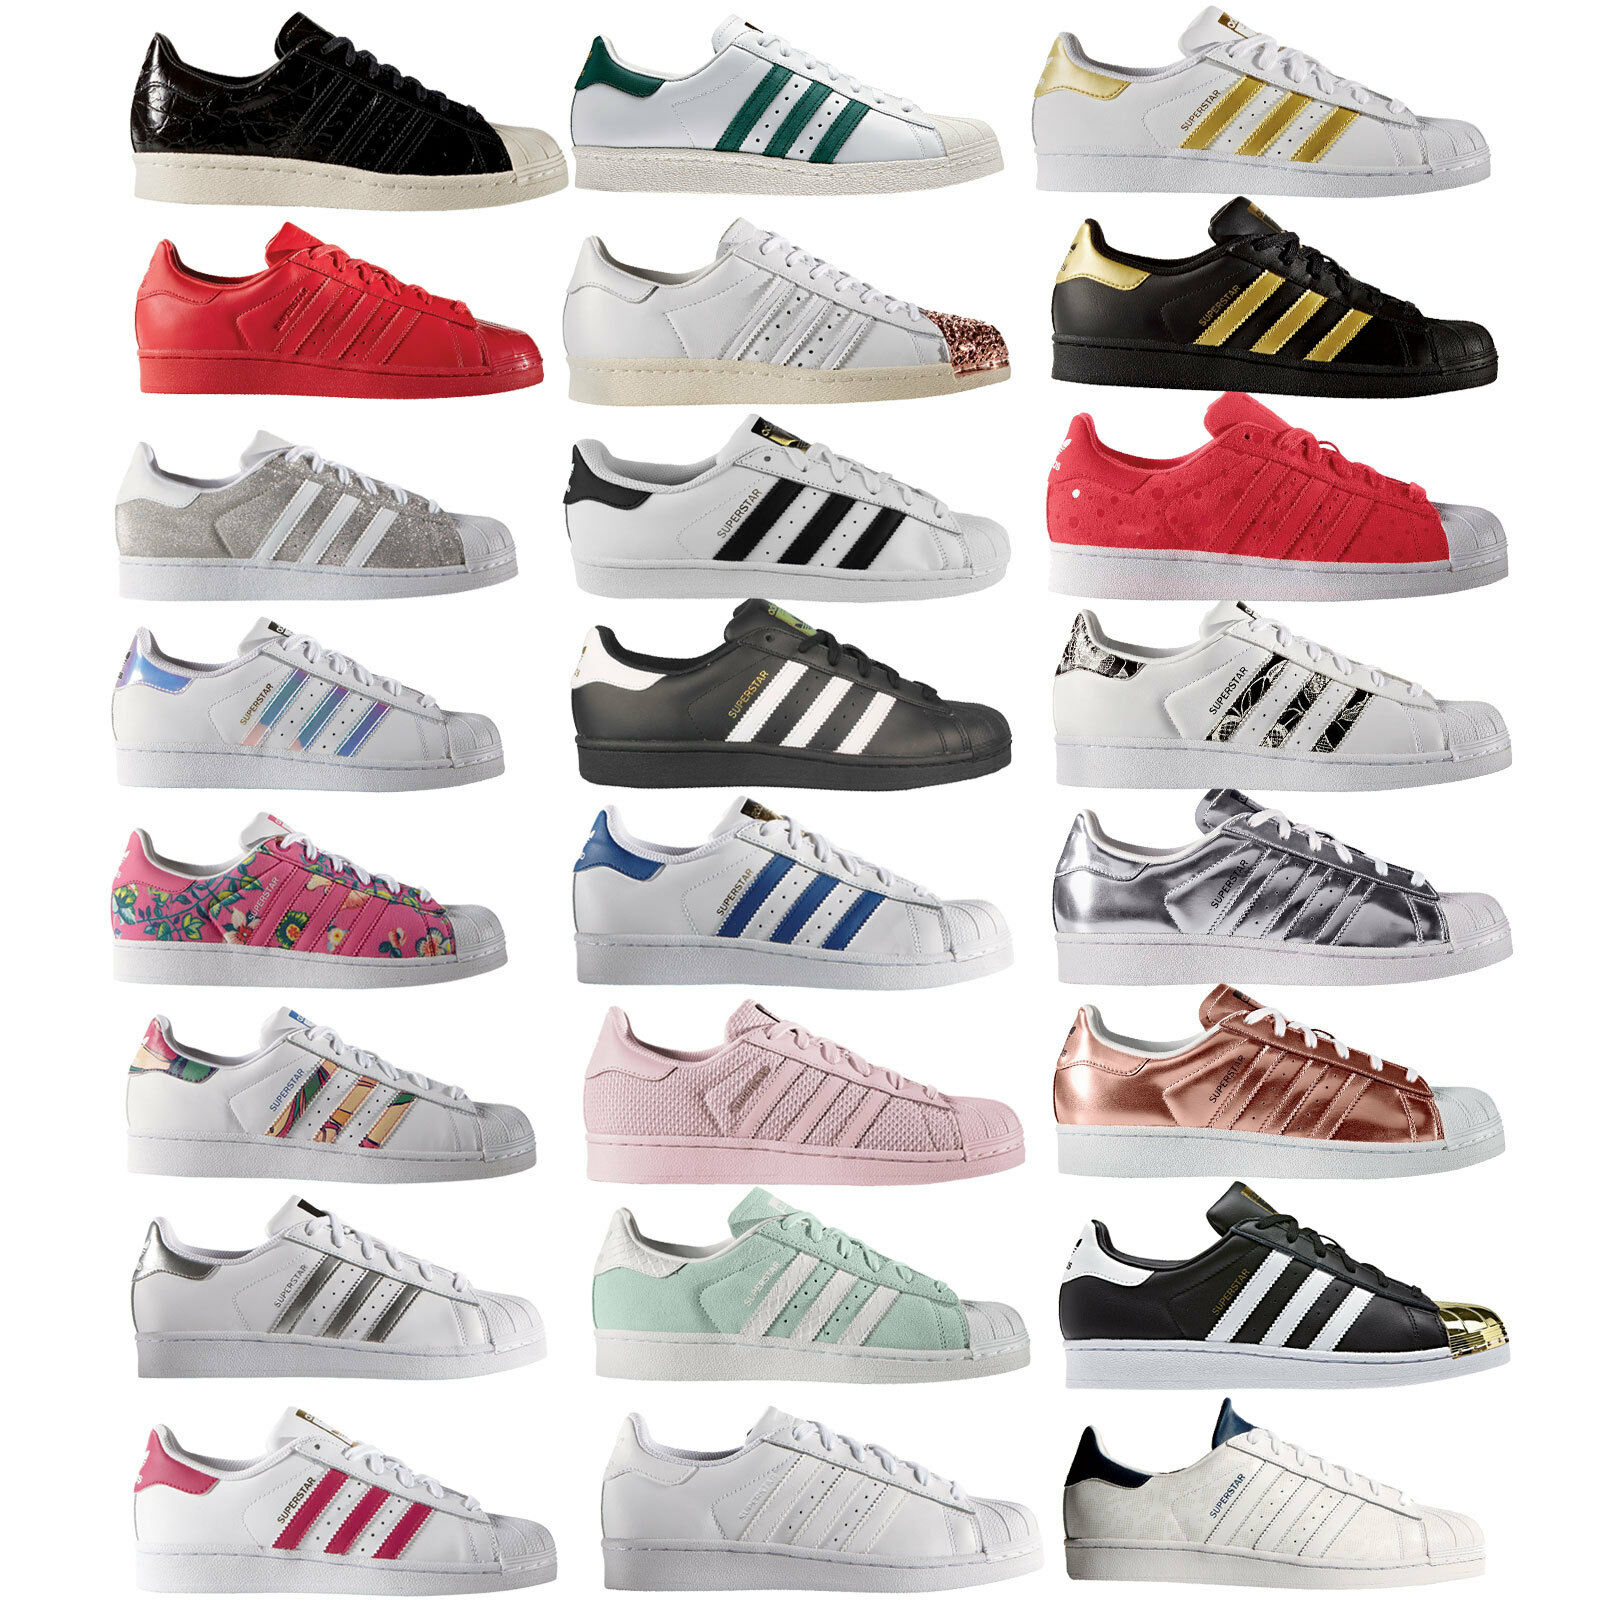 Adidas Originals Superstar Enfants Femme Baskets Gym Chaussures Chaussures Basses